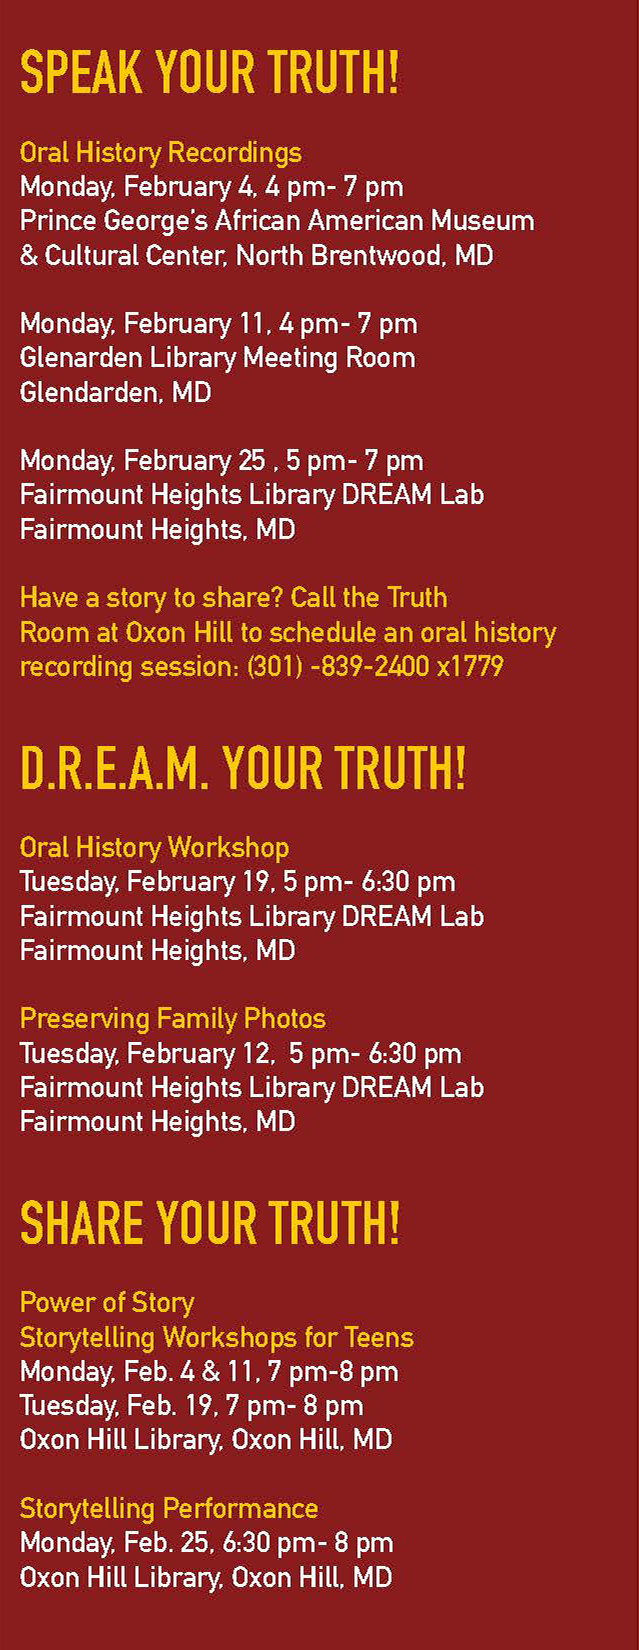 Speak Your Truth, D.R.E.A.M. Your Truth, Share Your Truth events listing